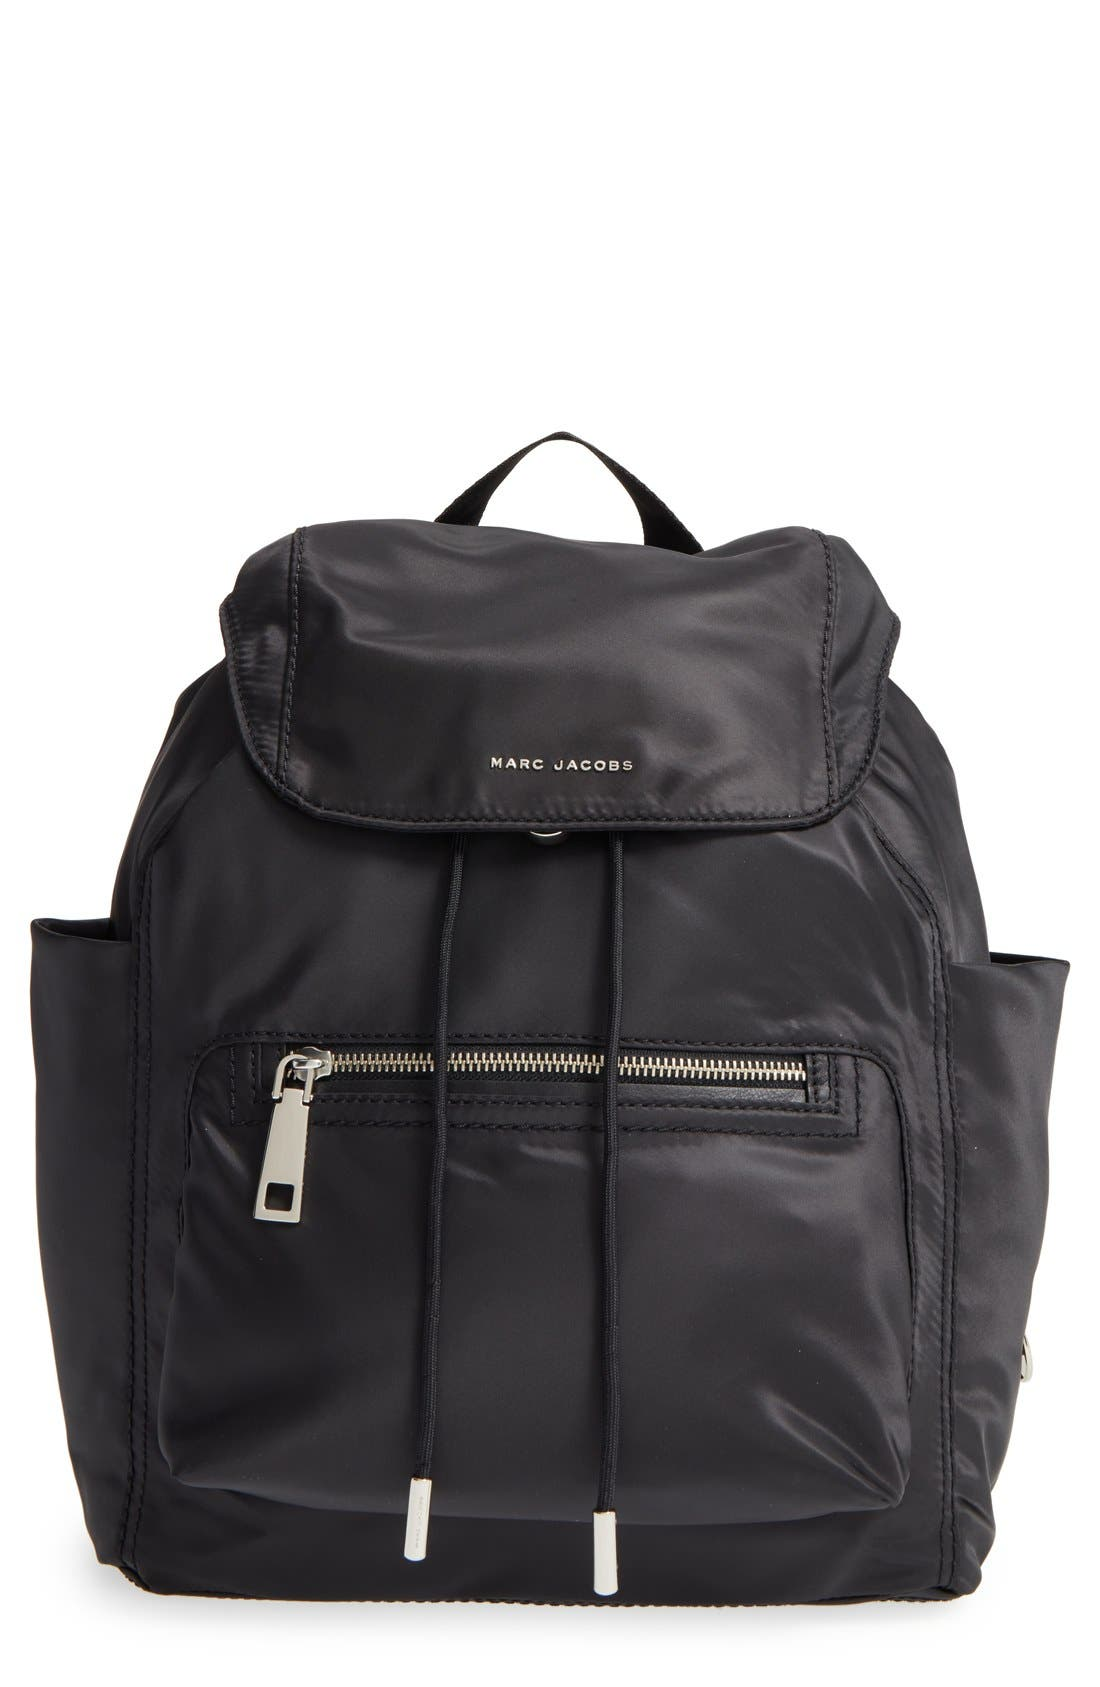 MARC JACOBS,                             'Easy' Backpack,                             Main thumbnail 1, color,                             001